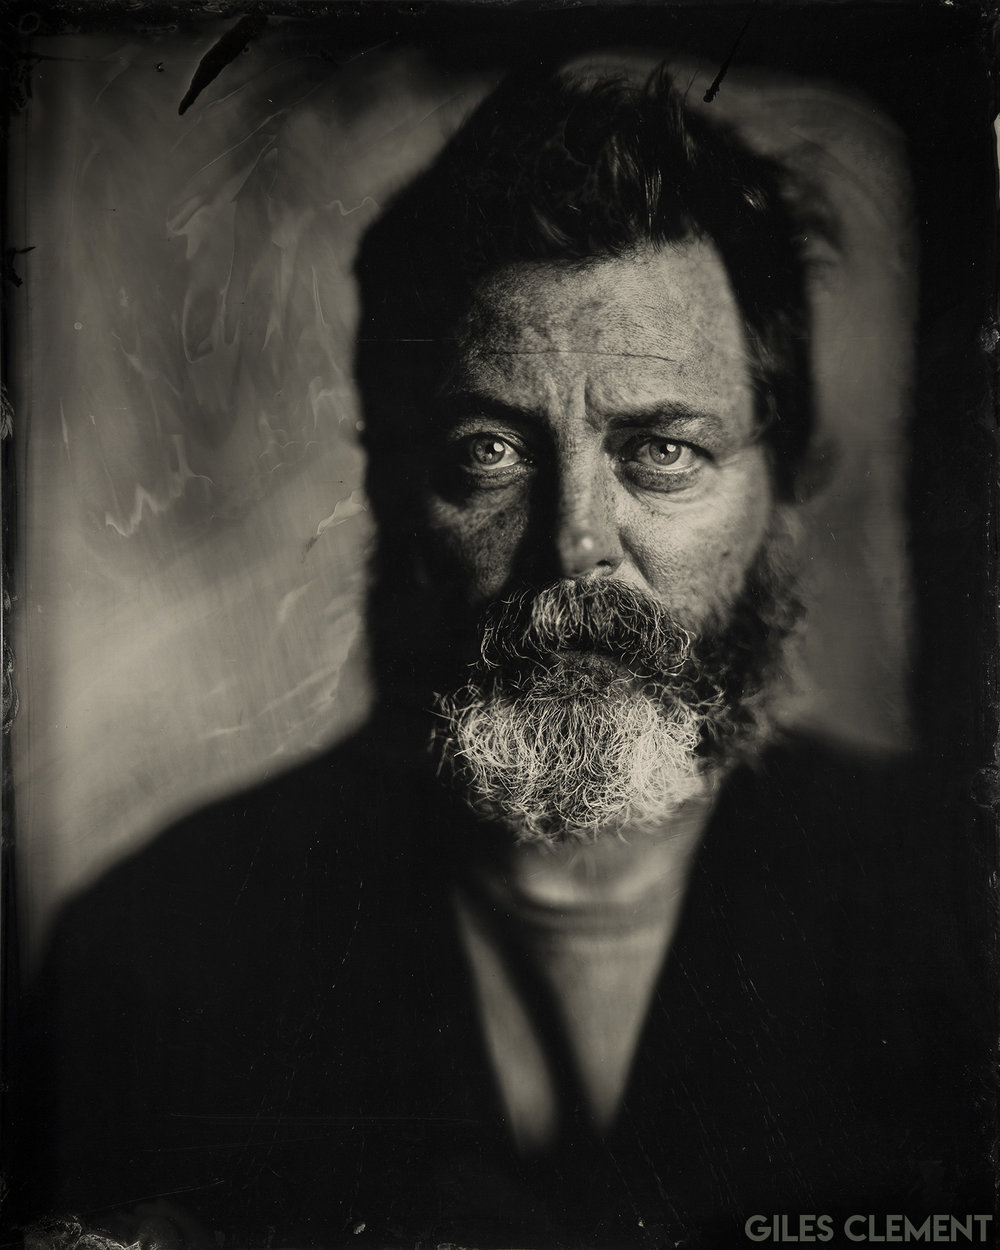 Giles Cement - Nick Offerman - What is an Ambrotype? - FilterGrade